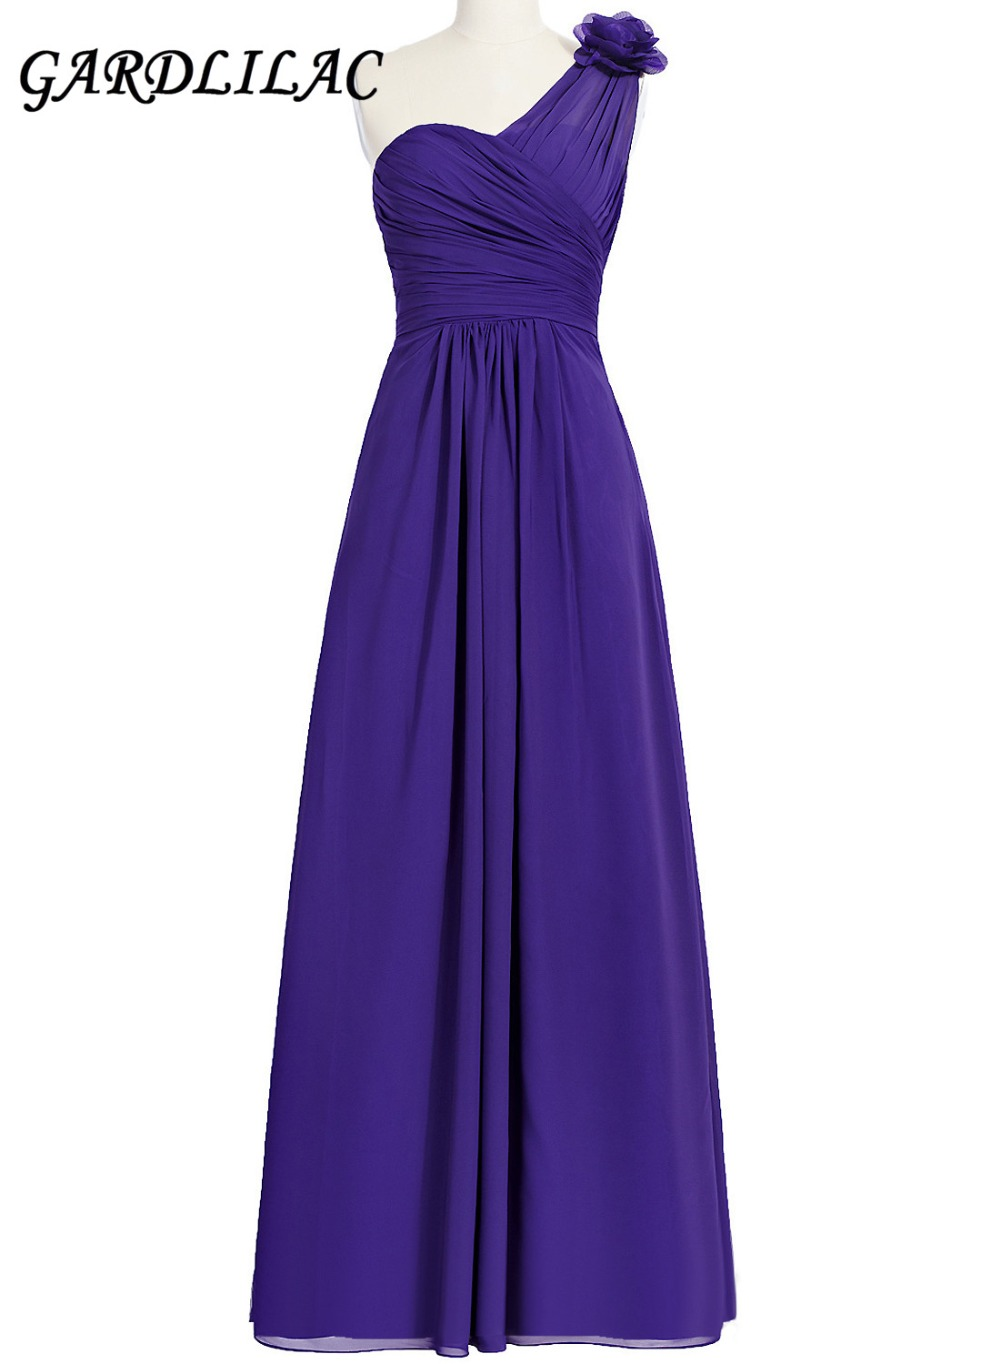 New One-Purple Purple Long Bridesmaid Dresses 2017 Plus Size Chiffon Wedding Party Dress with Flower Maid of Prom Gown